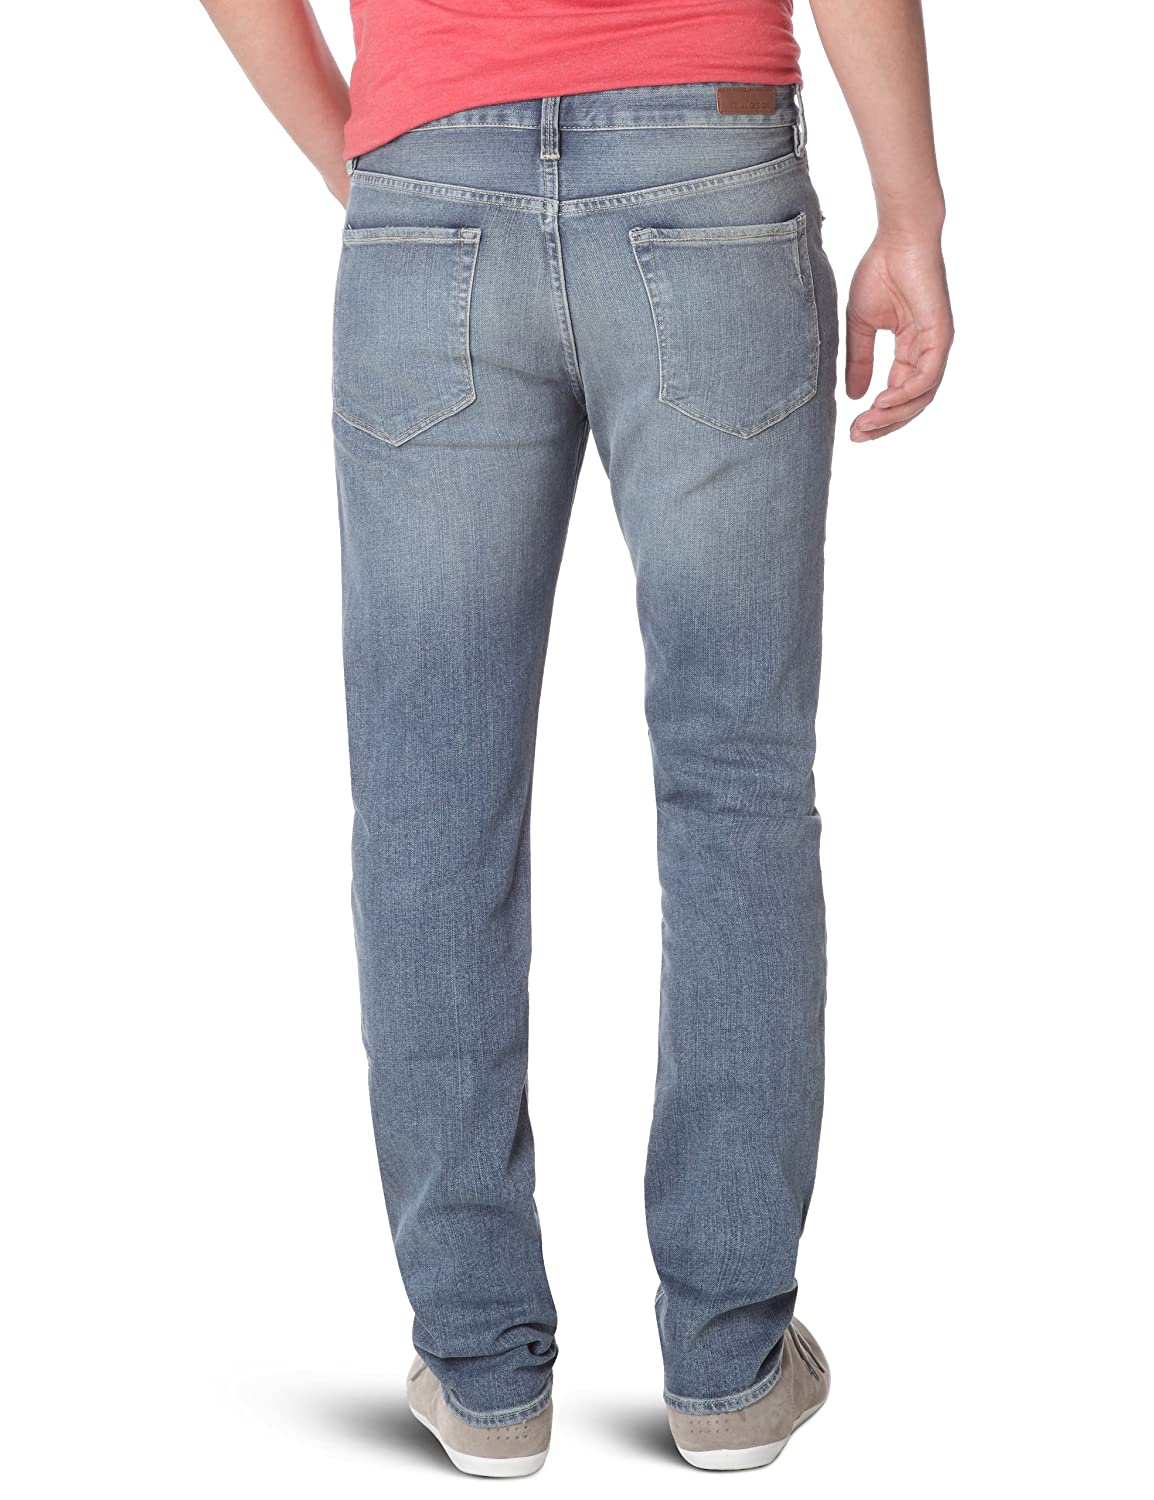 Geox Jeans Mens Blue : Amazon.co.uk: Clothing